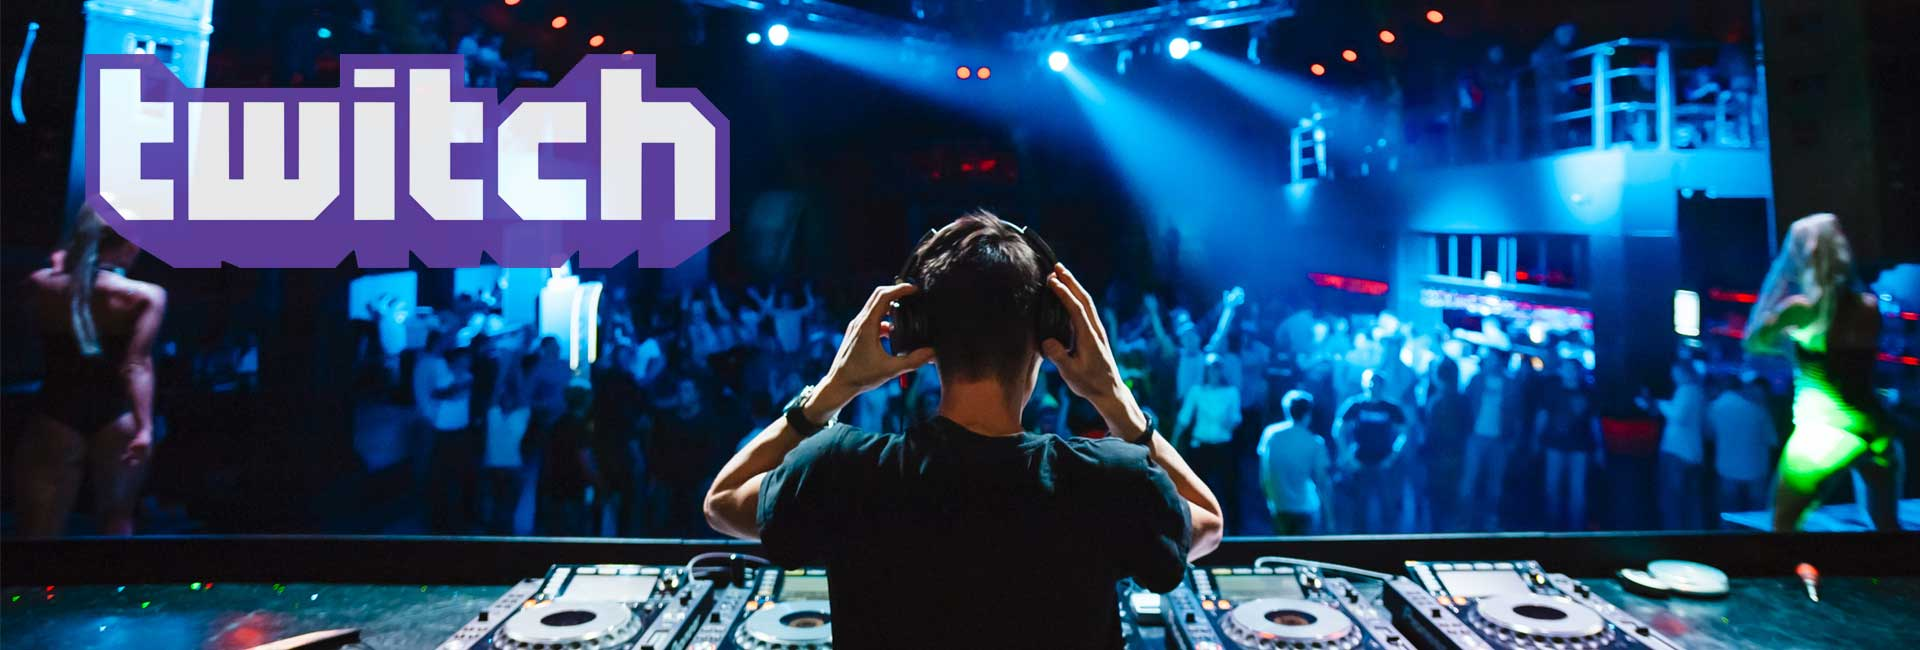 twitch webcasting company to film and stream to twitch streaming company webcast game video production uk